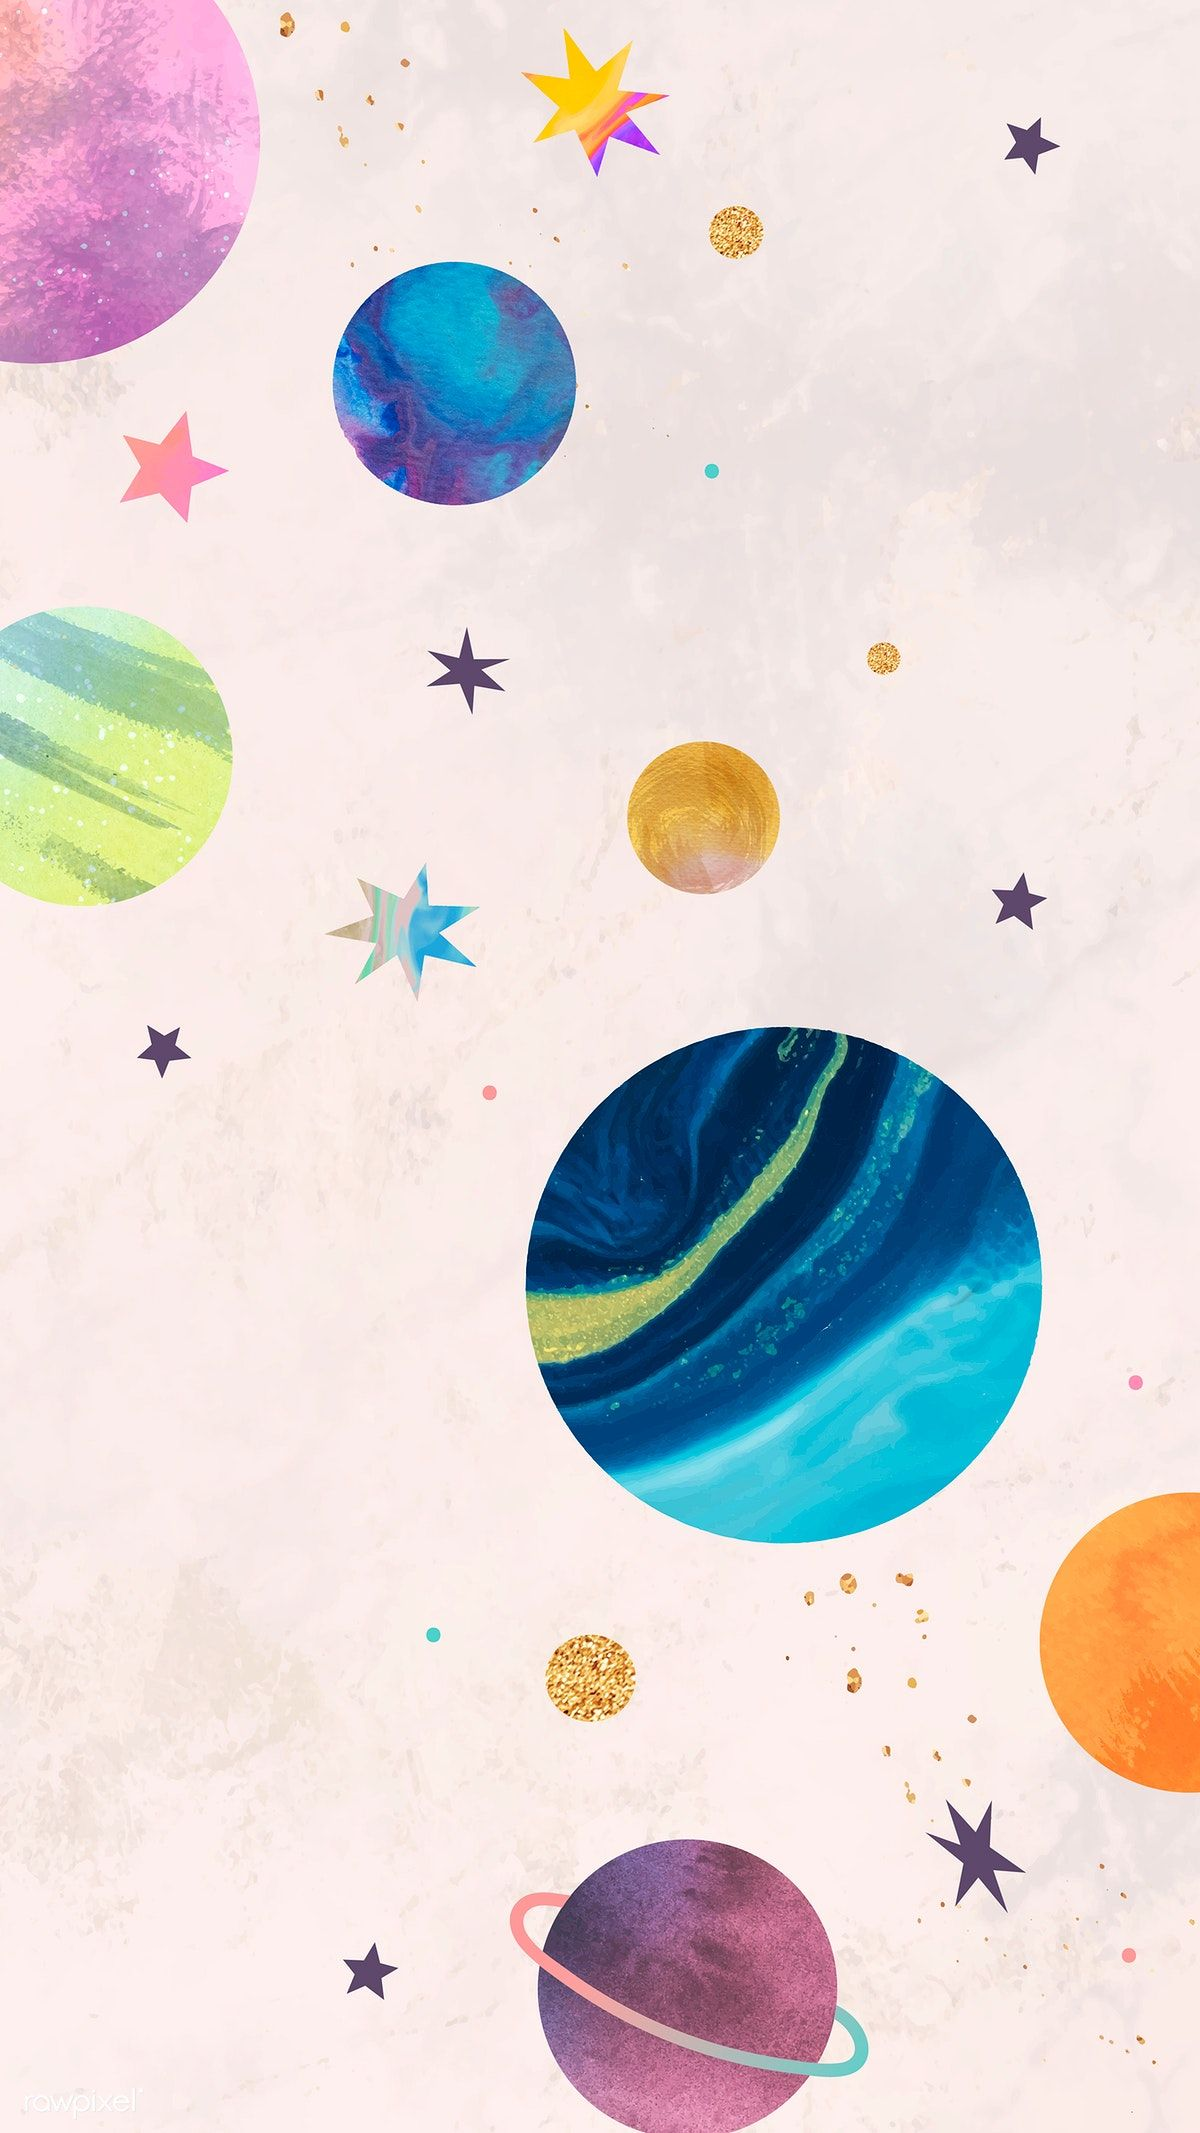 Download premium vector of Colorful galaxy watercolor doodle on pastel background mobile phone wallpaper vector by Toon about watercolor mobile phone wallpaper, Coloured drawing, cute wallpaper, Pastel wallpaper iphone, and wallpaper 1230080